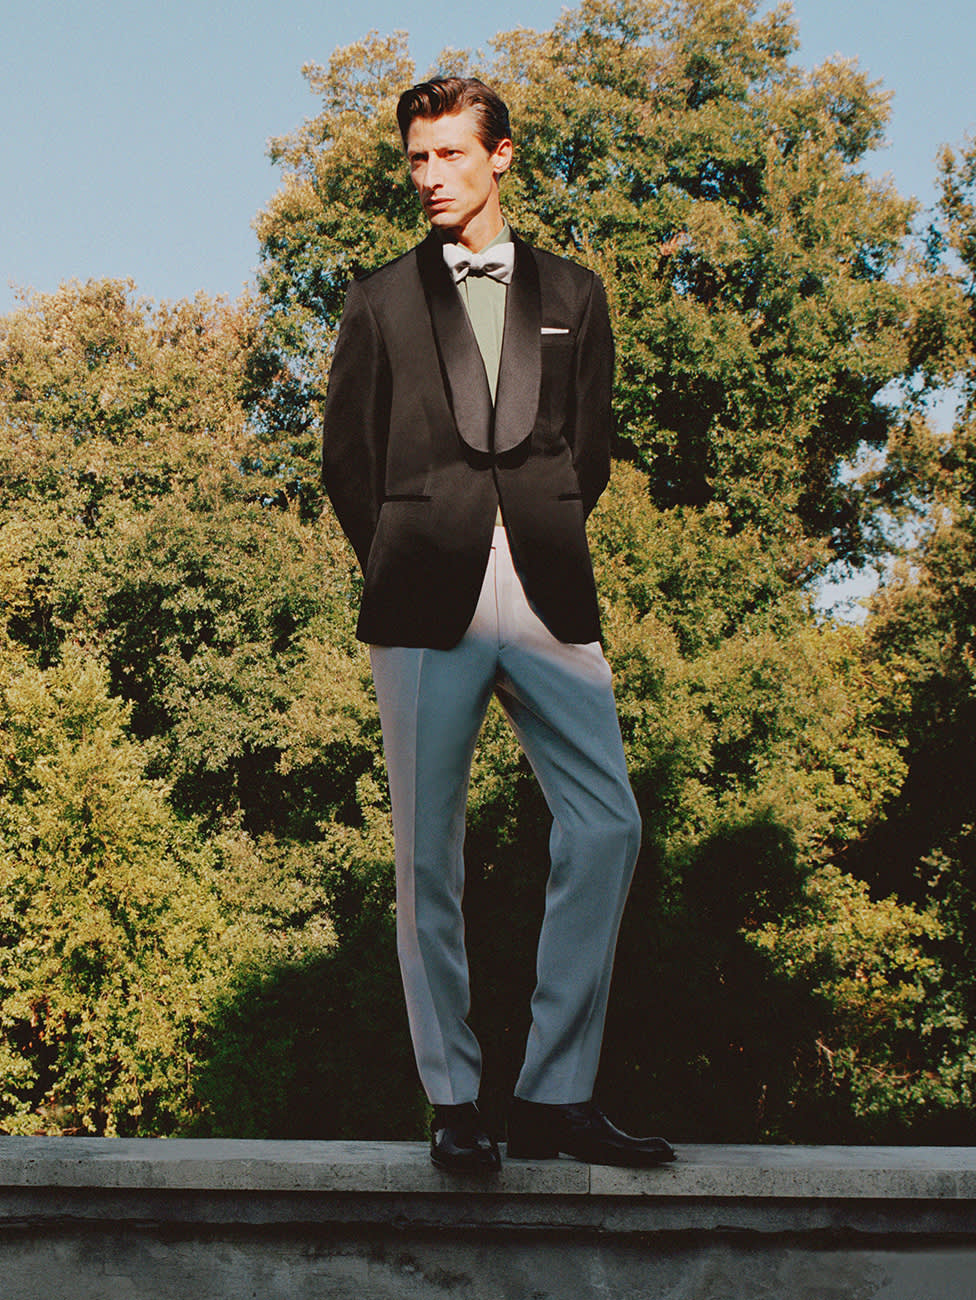 Male model wearing an eveningwear outfit.